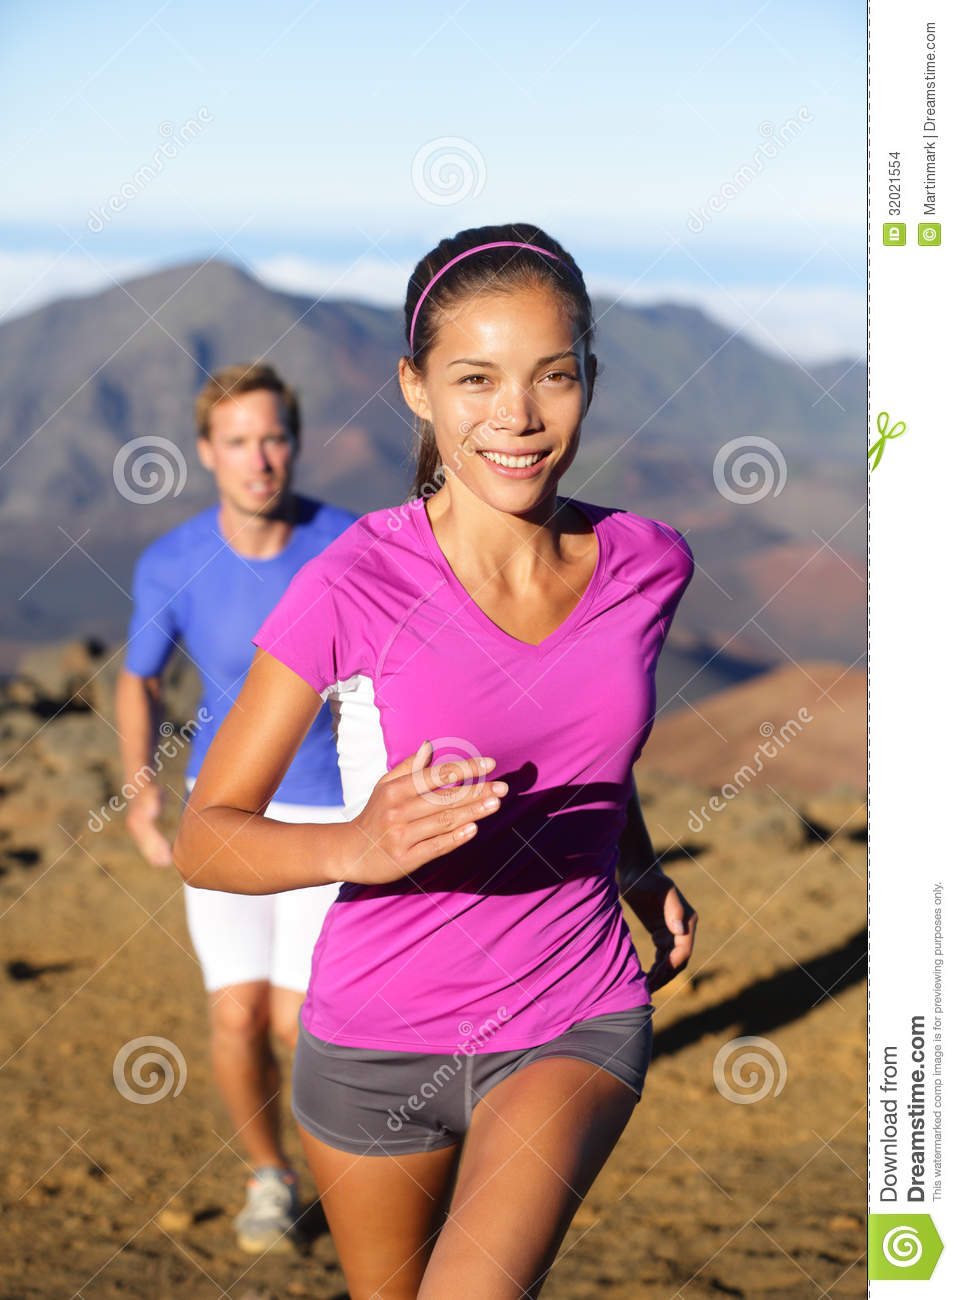 Trail running women runner. Healthy lifestyle concept with runners